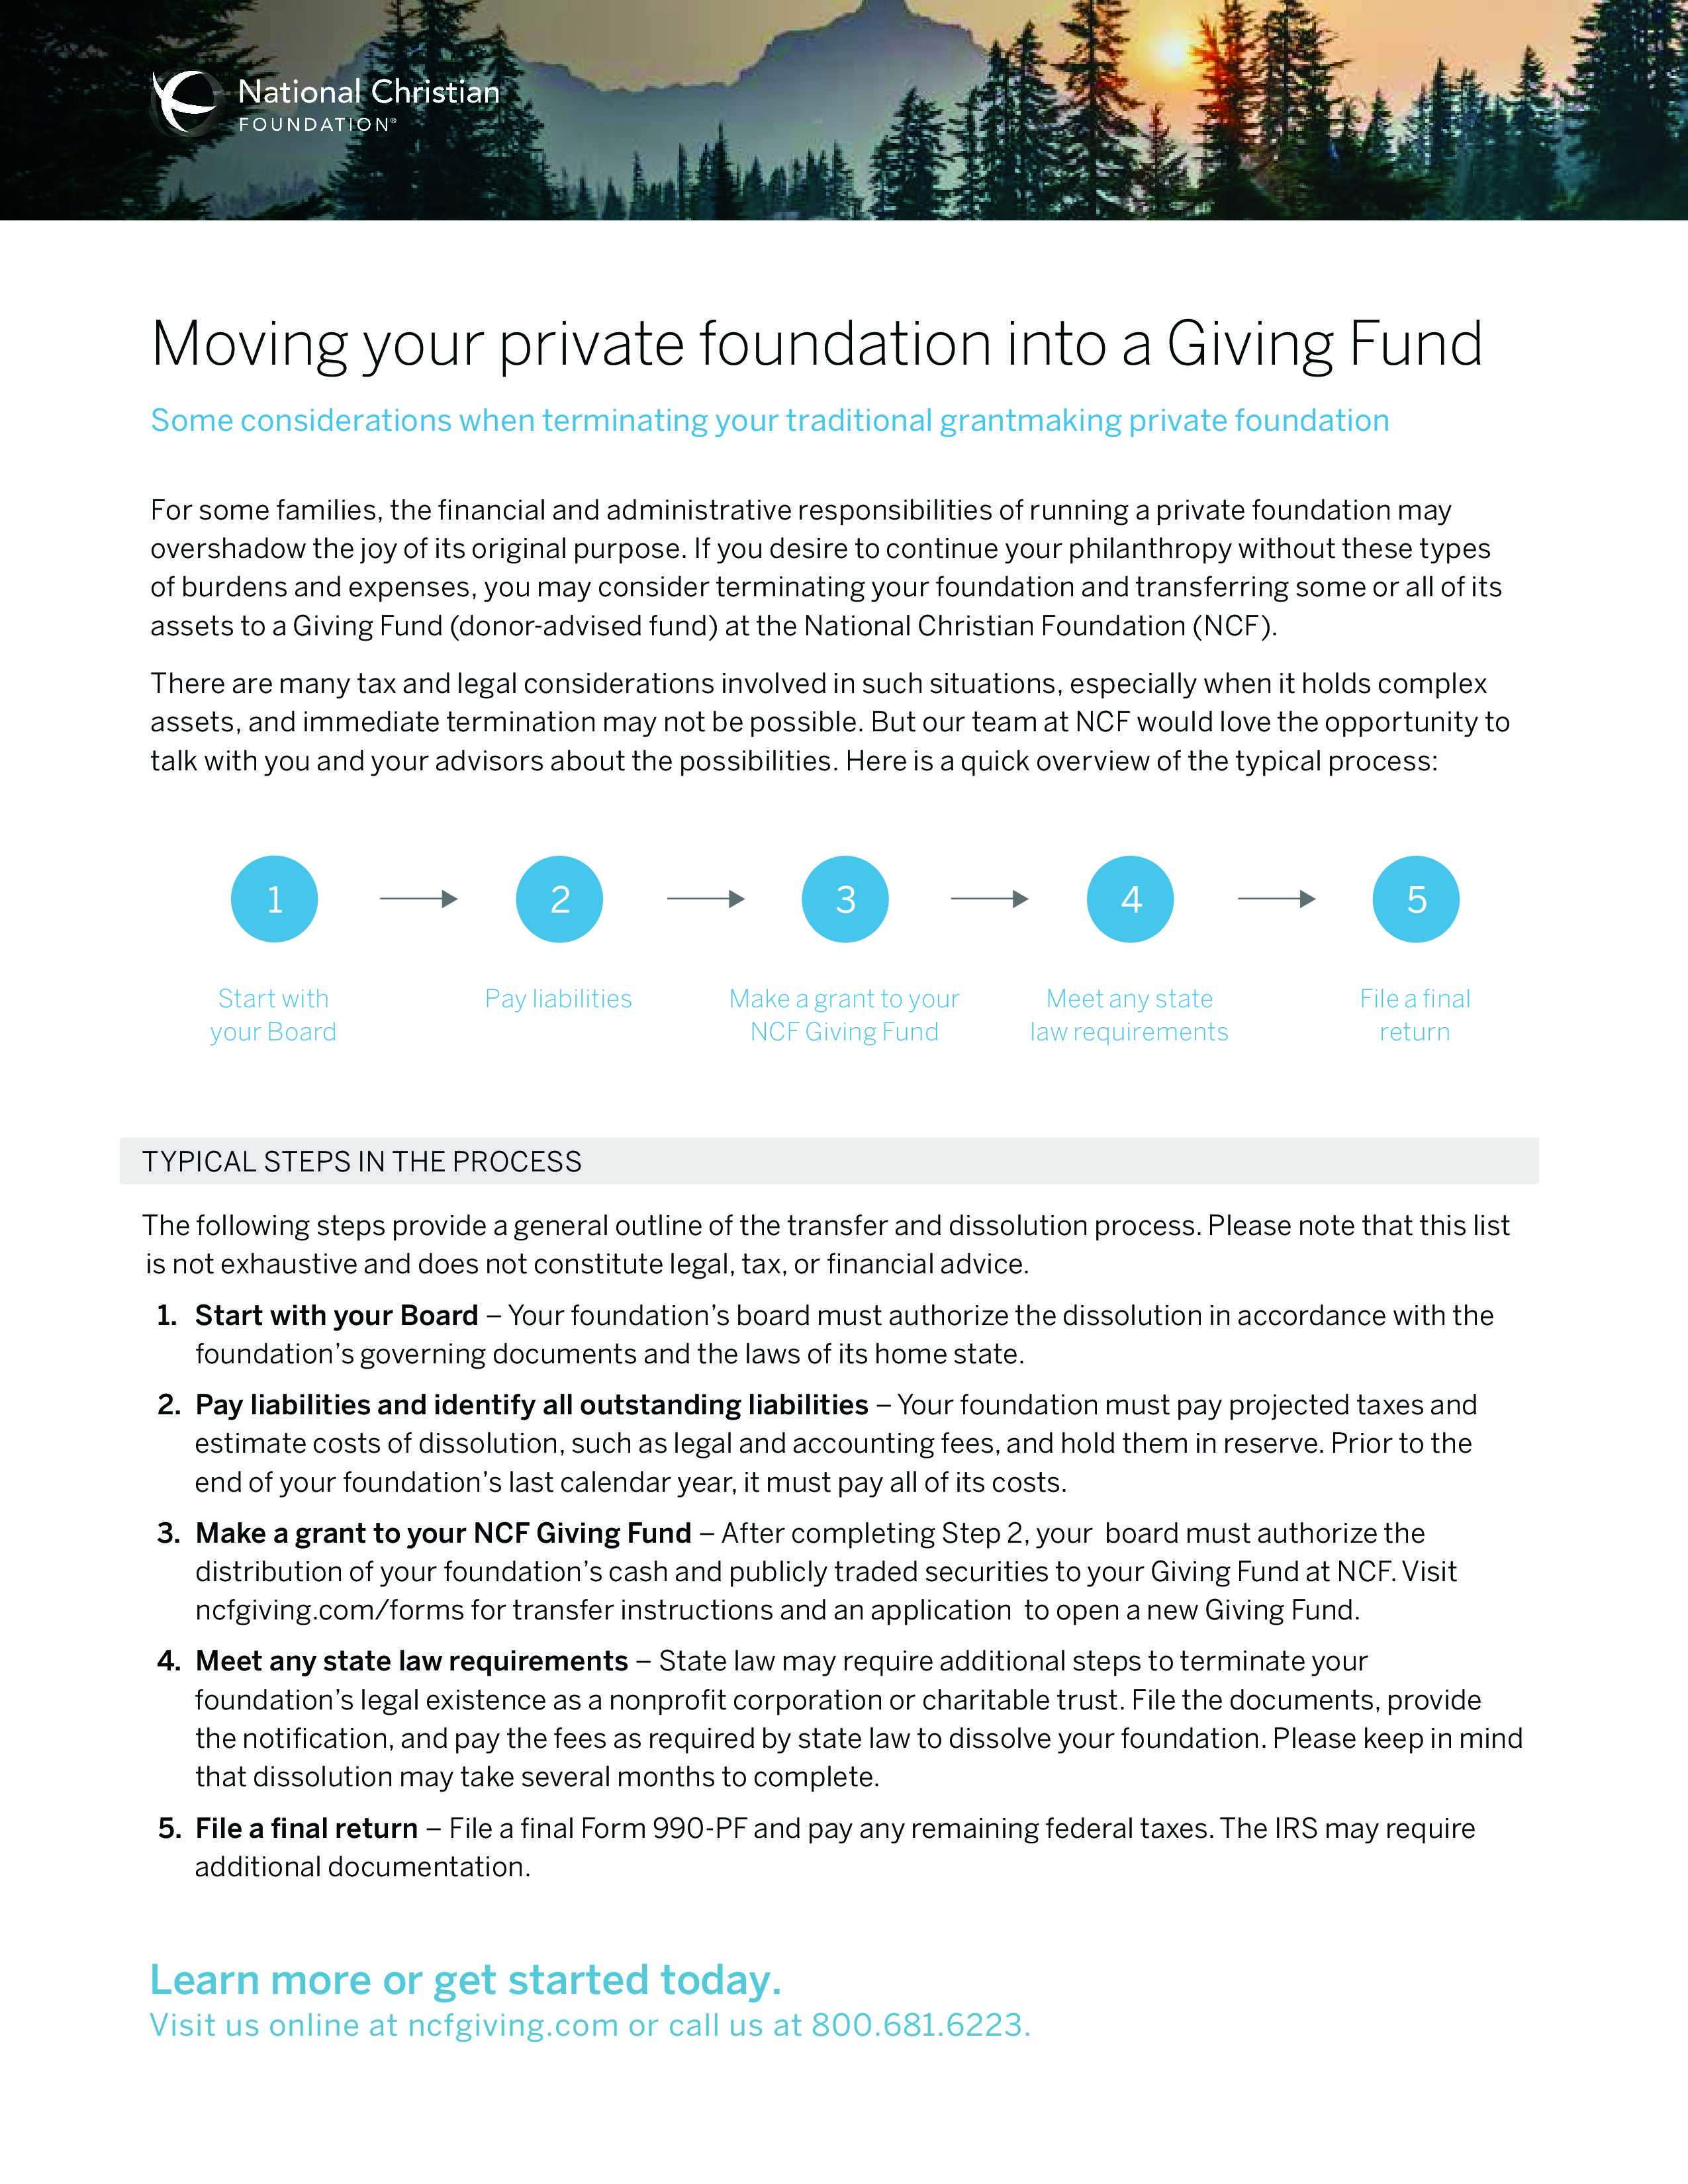 Moving Your Private Foundation to A Giving Fund